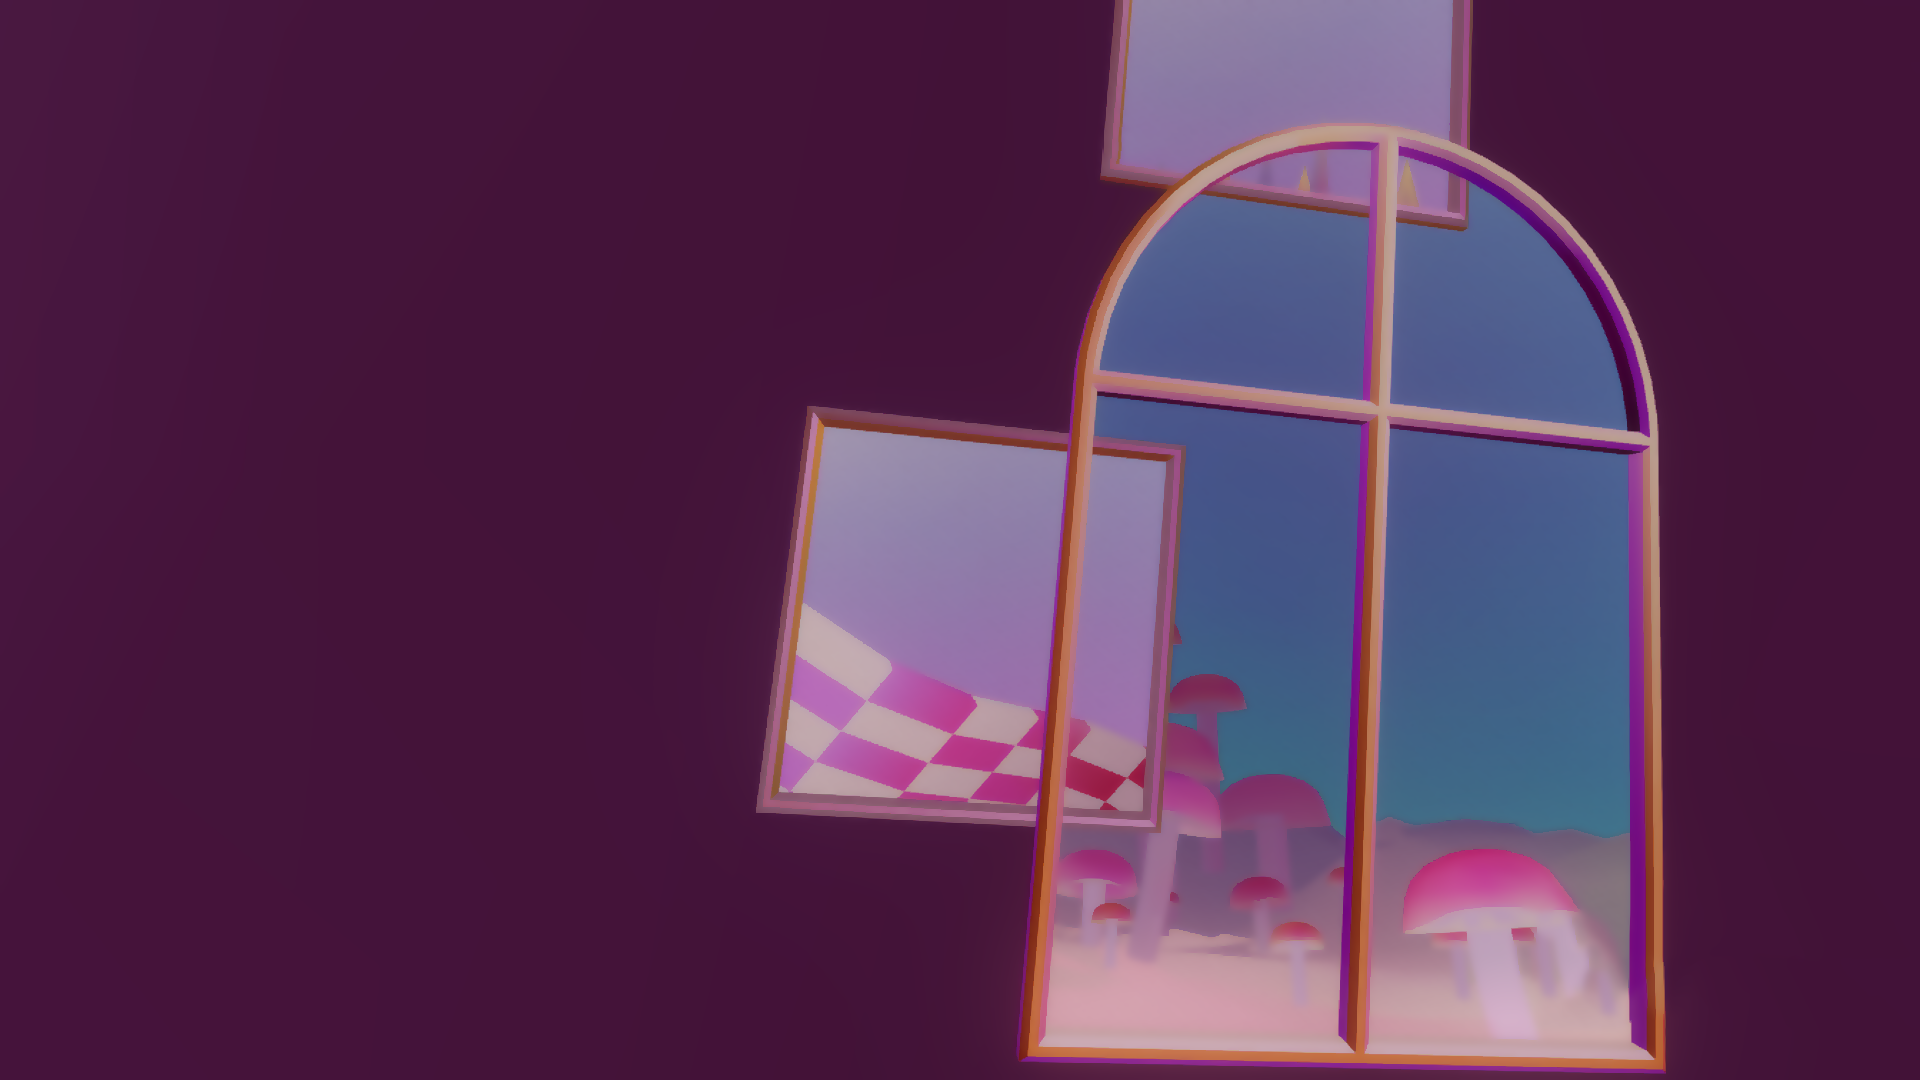 unityproj_downtherabbithole_vr 2019-04-05 3_51_20 PM